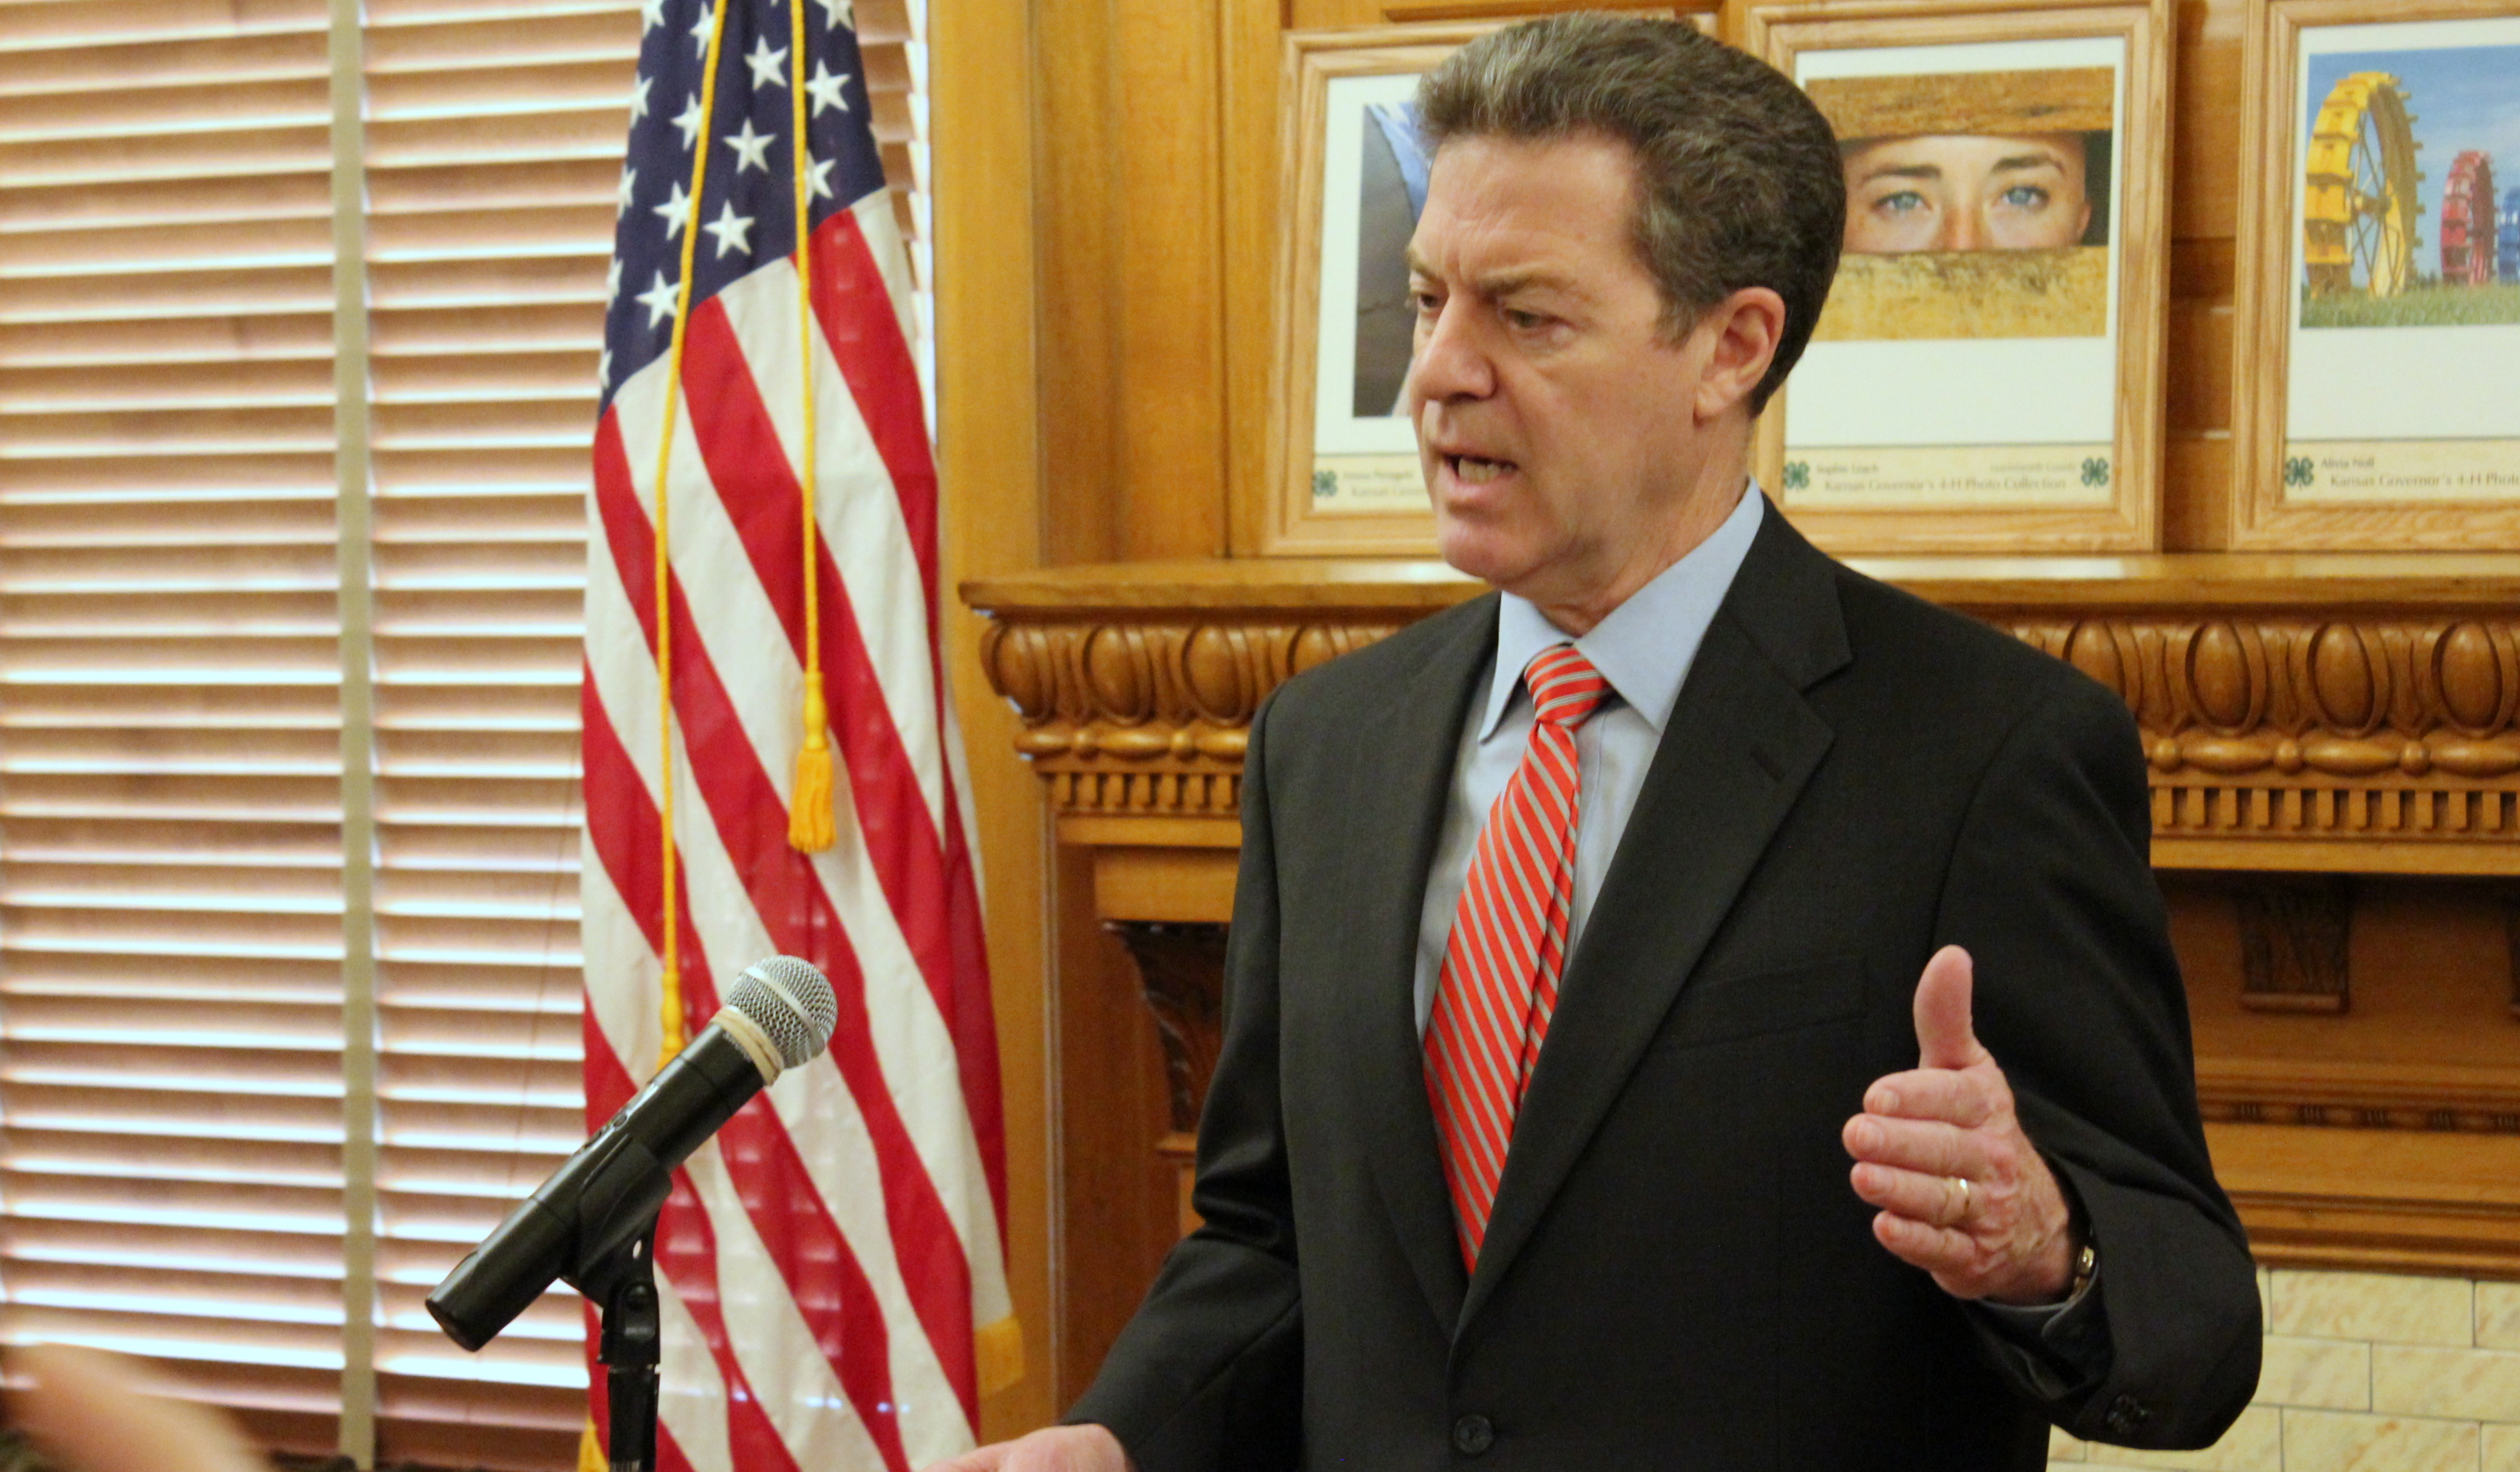 Governor Brownback speaking to reporters at the Statehouse Wednesday. (Photo by Stephen Koranda)